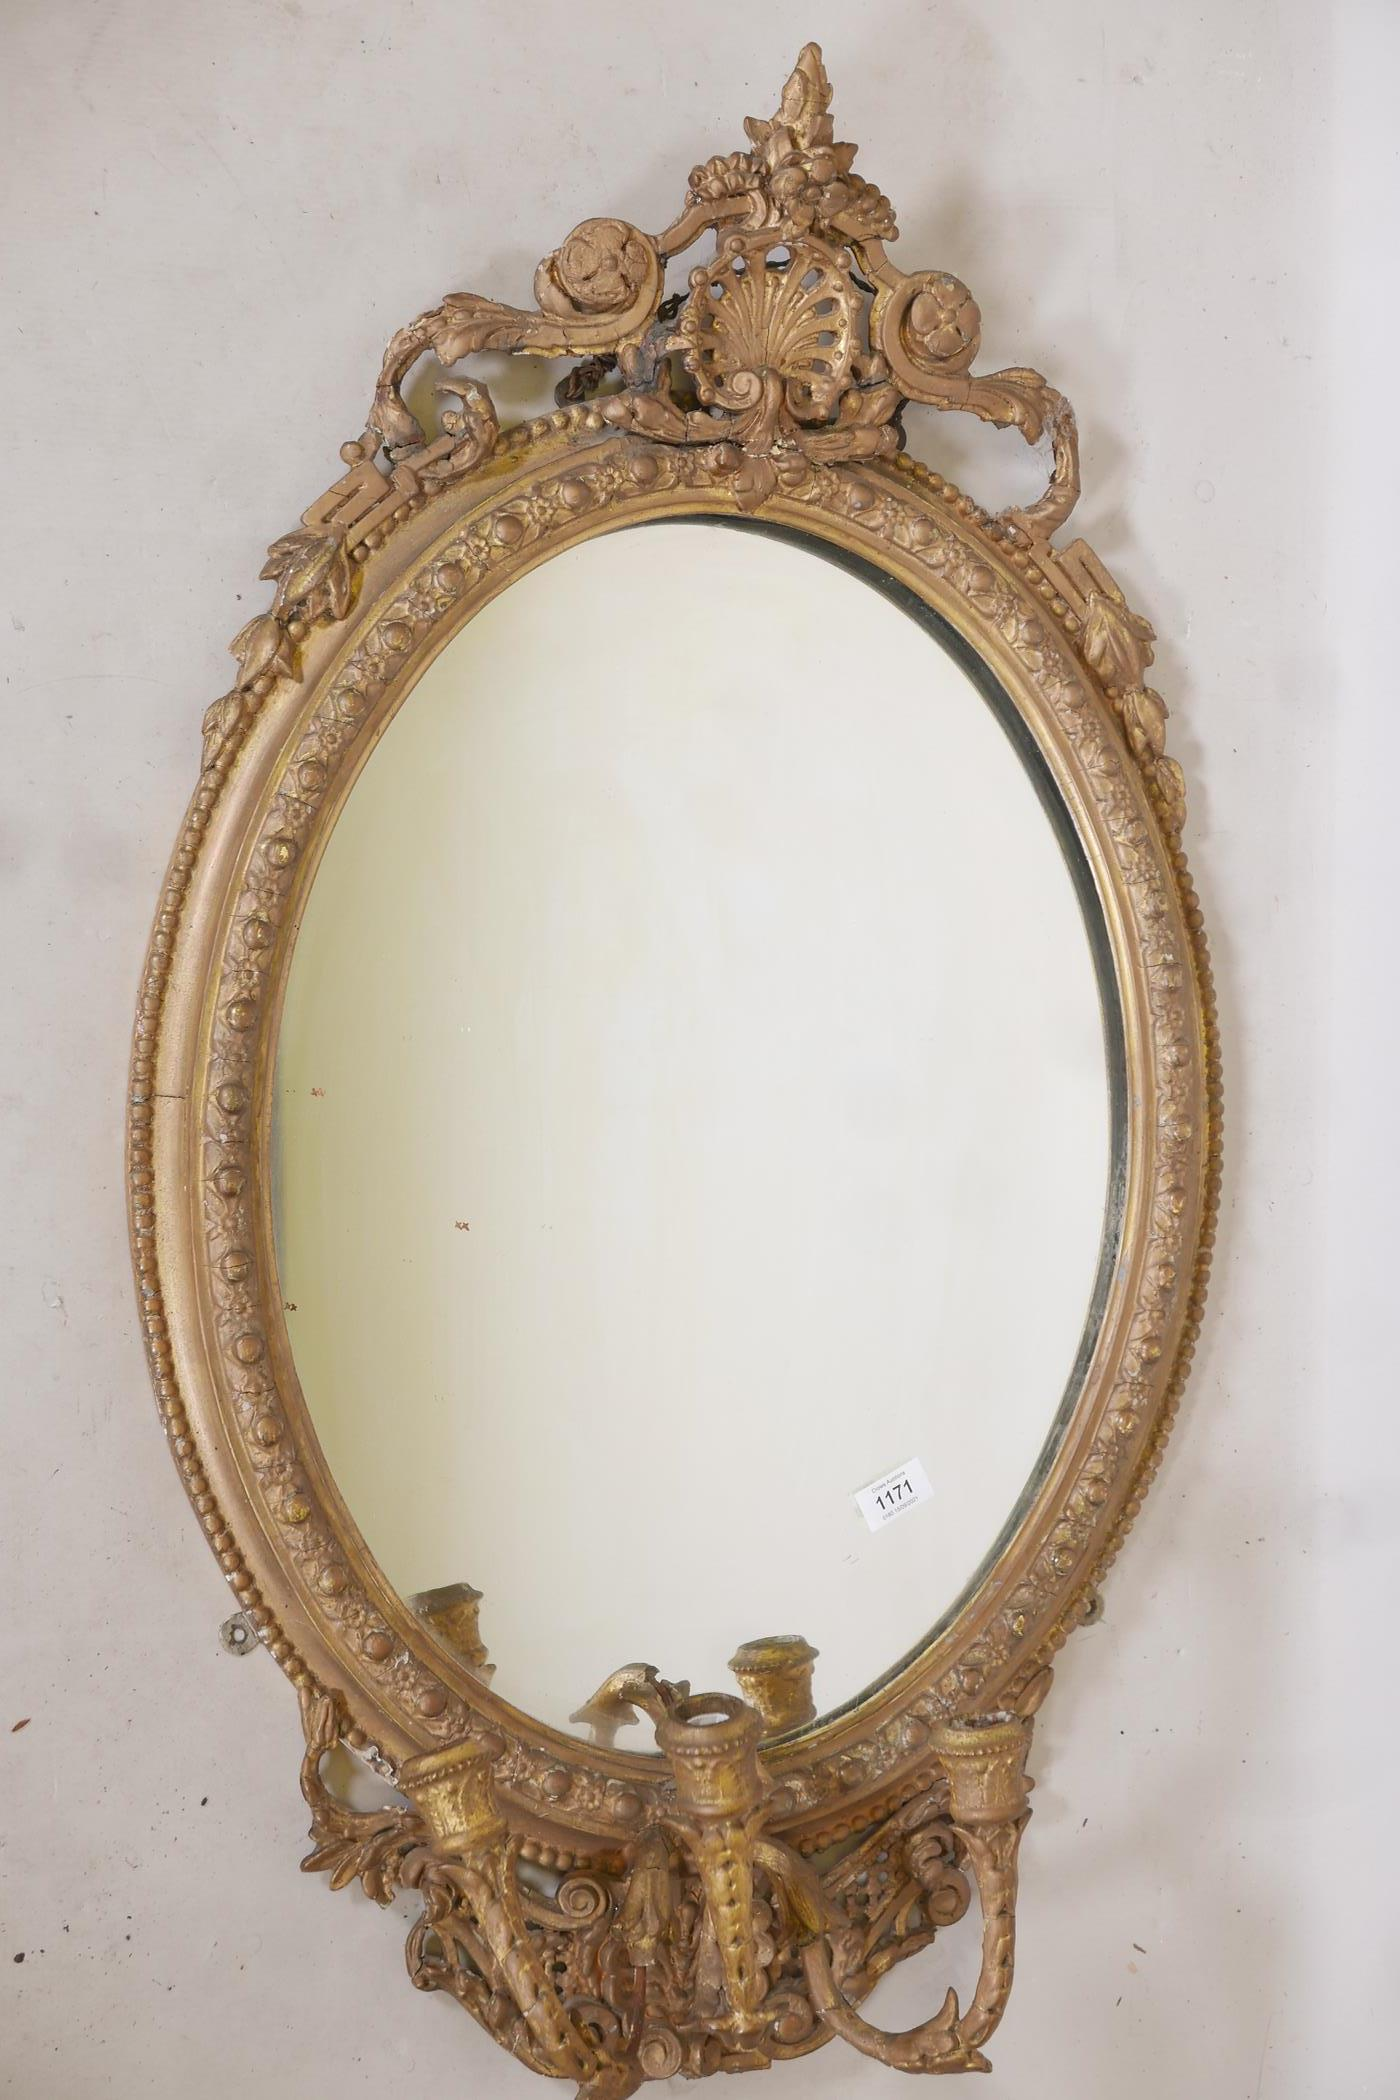 """A C19th giltwood and composition girondelle wall mirror with triple sconce, 37"""" x 23"""" - Image 2 of 5"""